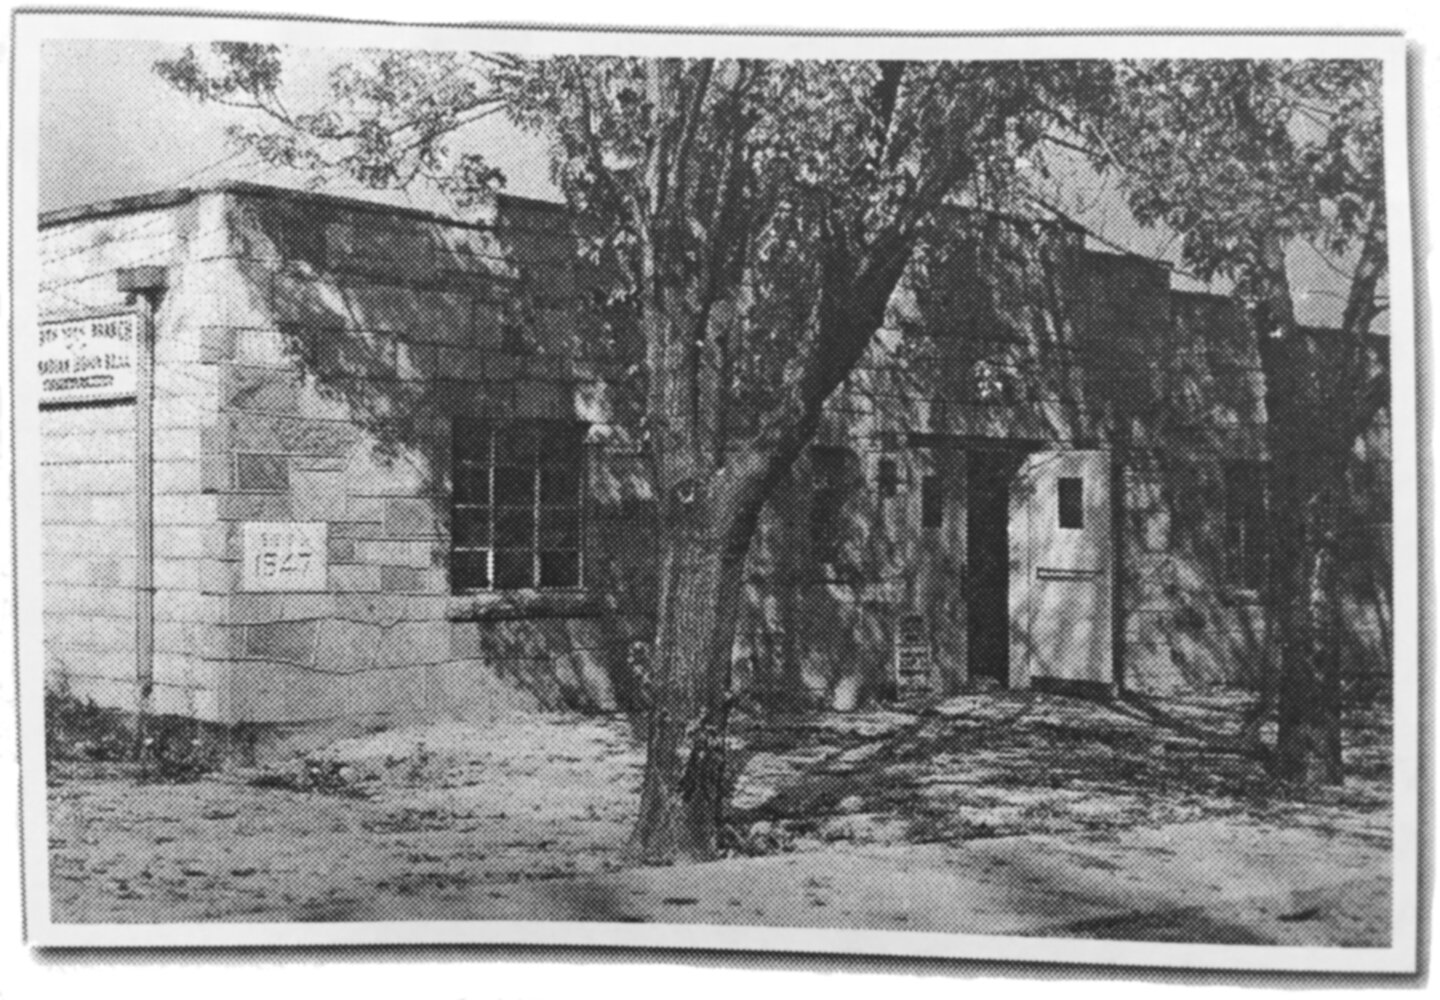 Legion Hall, Where We First Gathered 1949